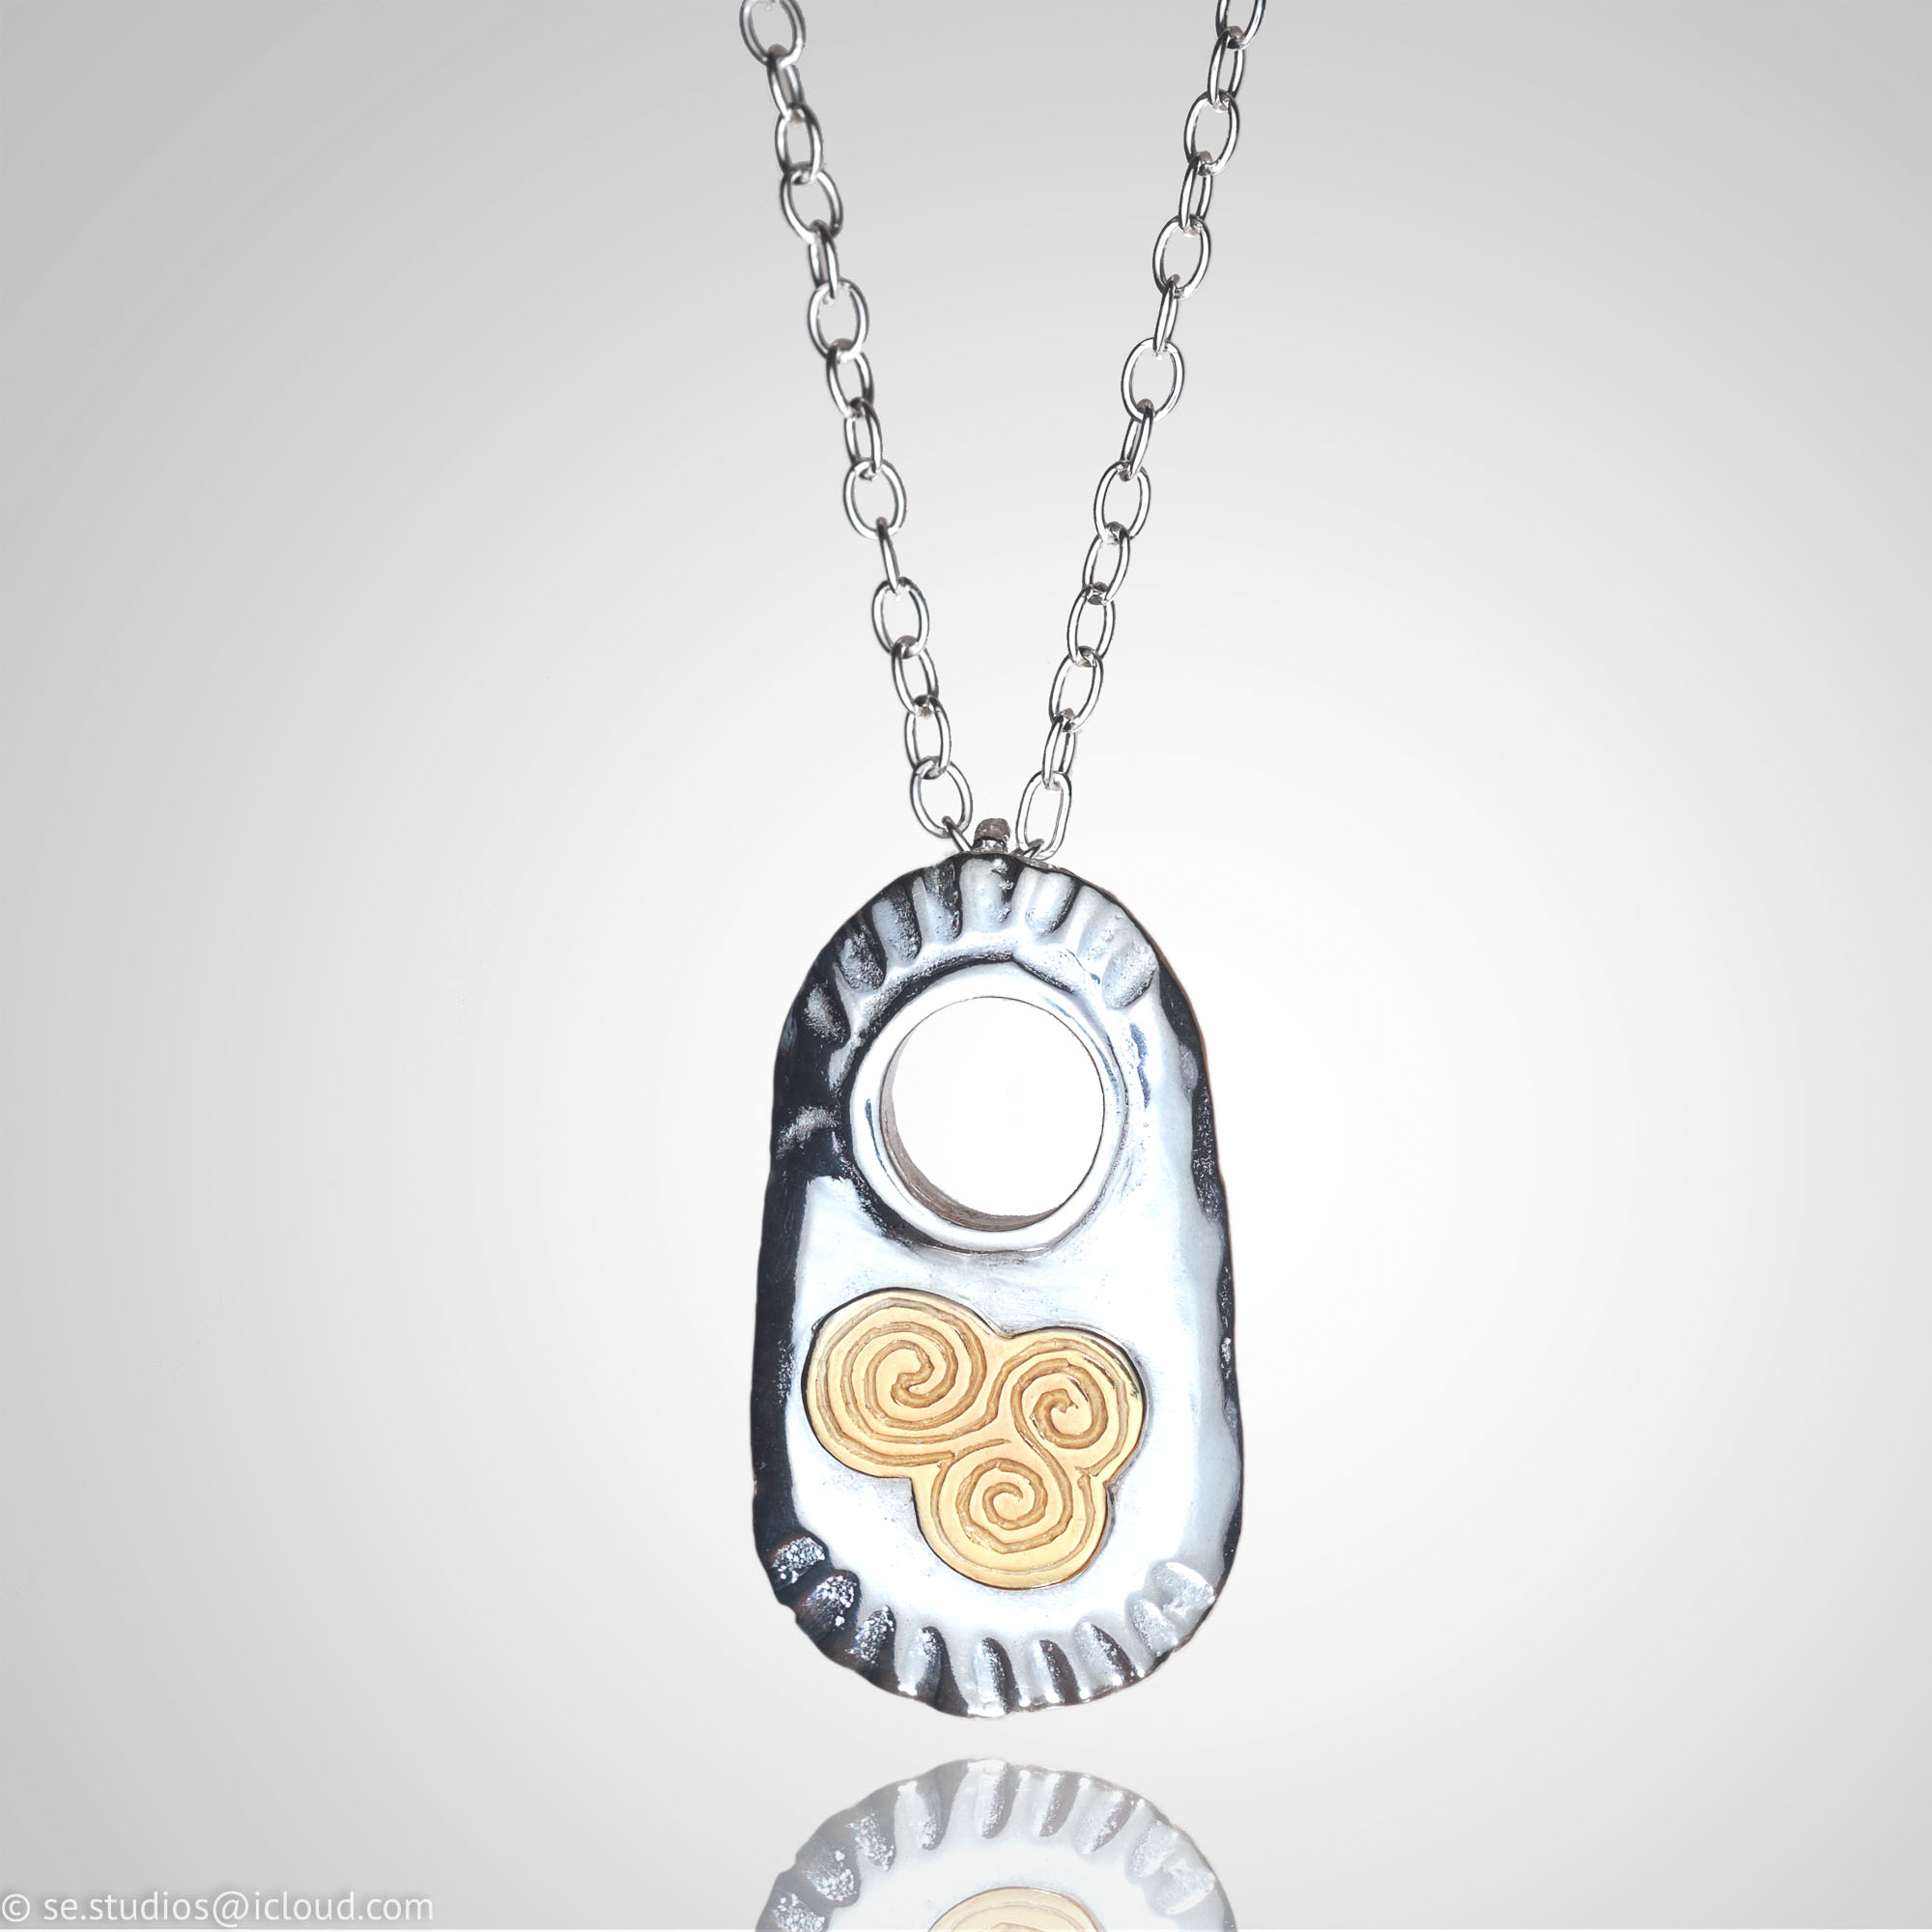 Silver Pendant With 9ct Gold Spiral